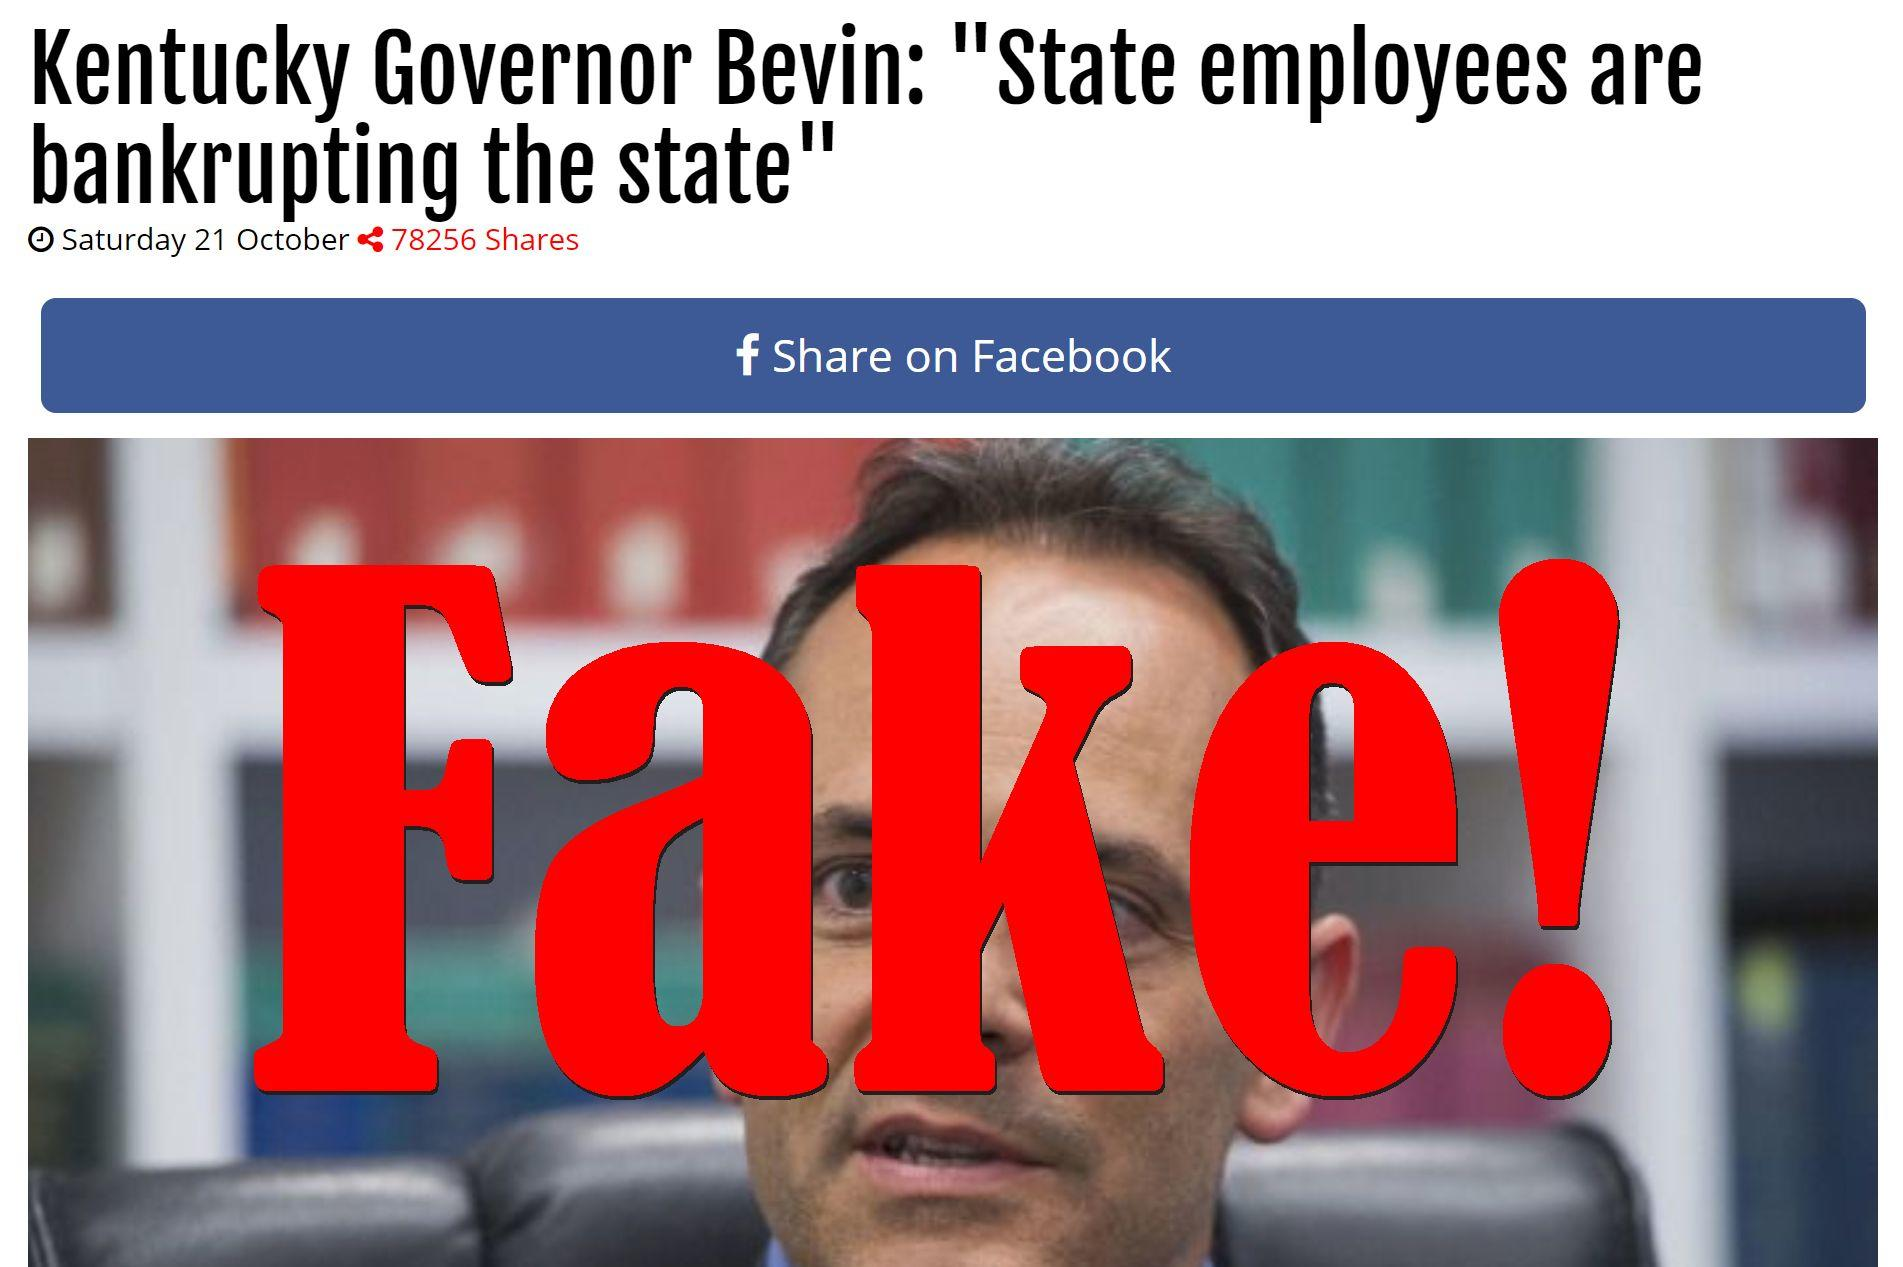 Fake News: Kentucky Governor Bevin Did NOT Say State Employees Are Bankrupting The State